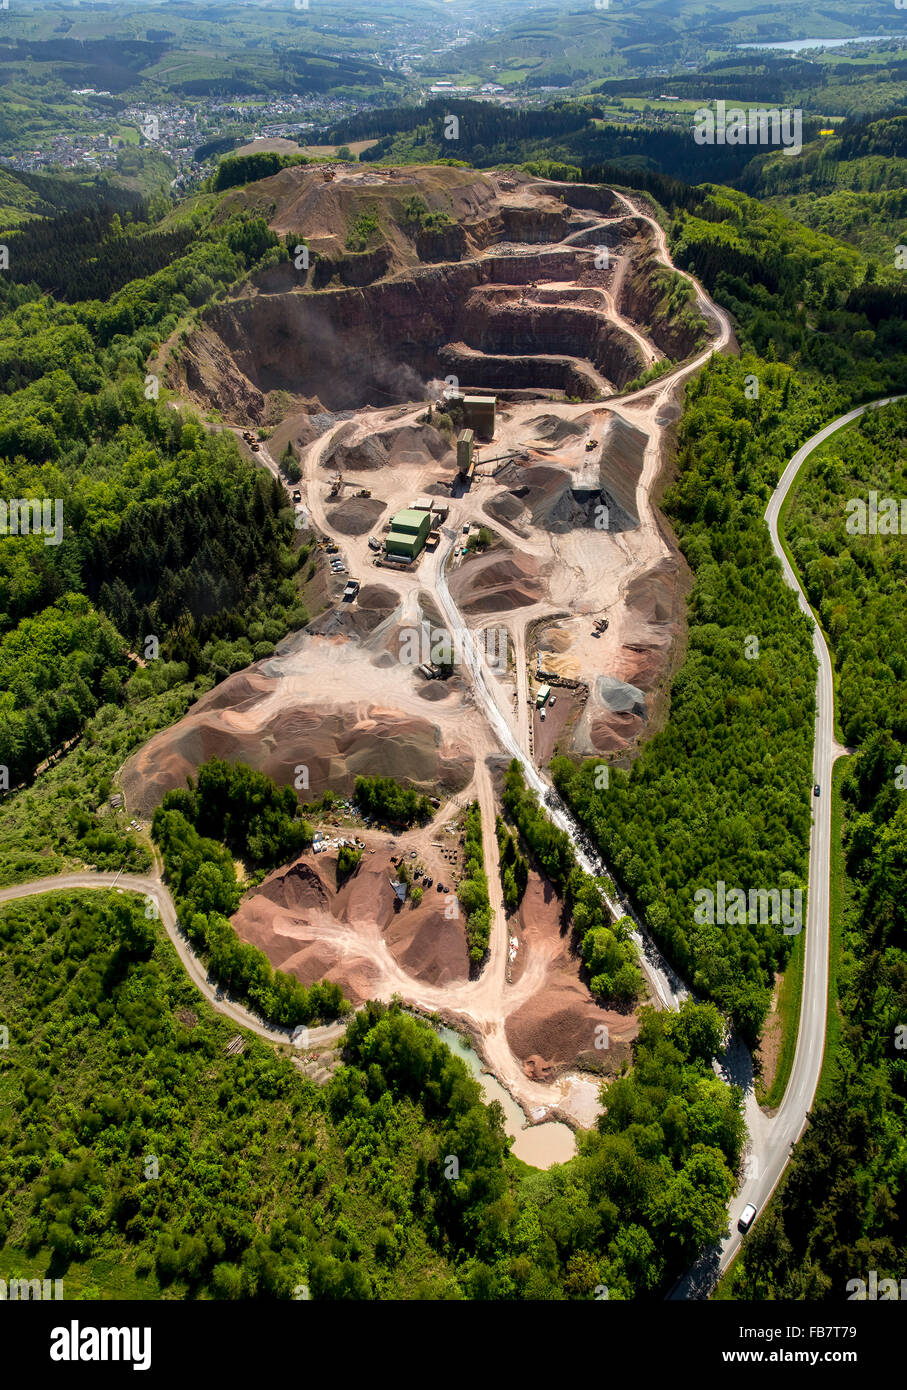 Aerial view, quarry, landscape consumption, limestone mining in the northern Sauerland, quarry operations Ebel, - Stock Image